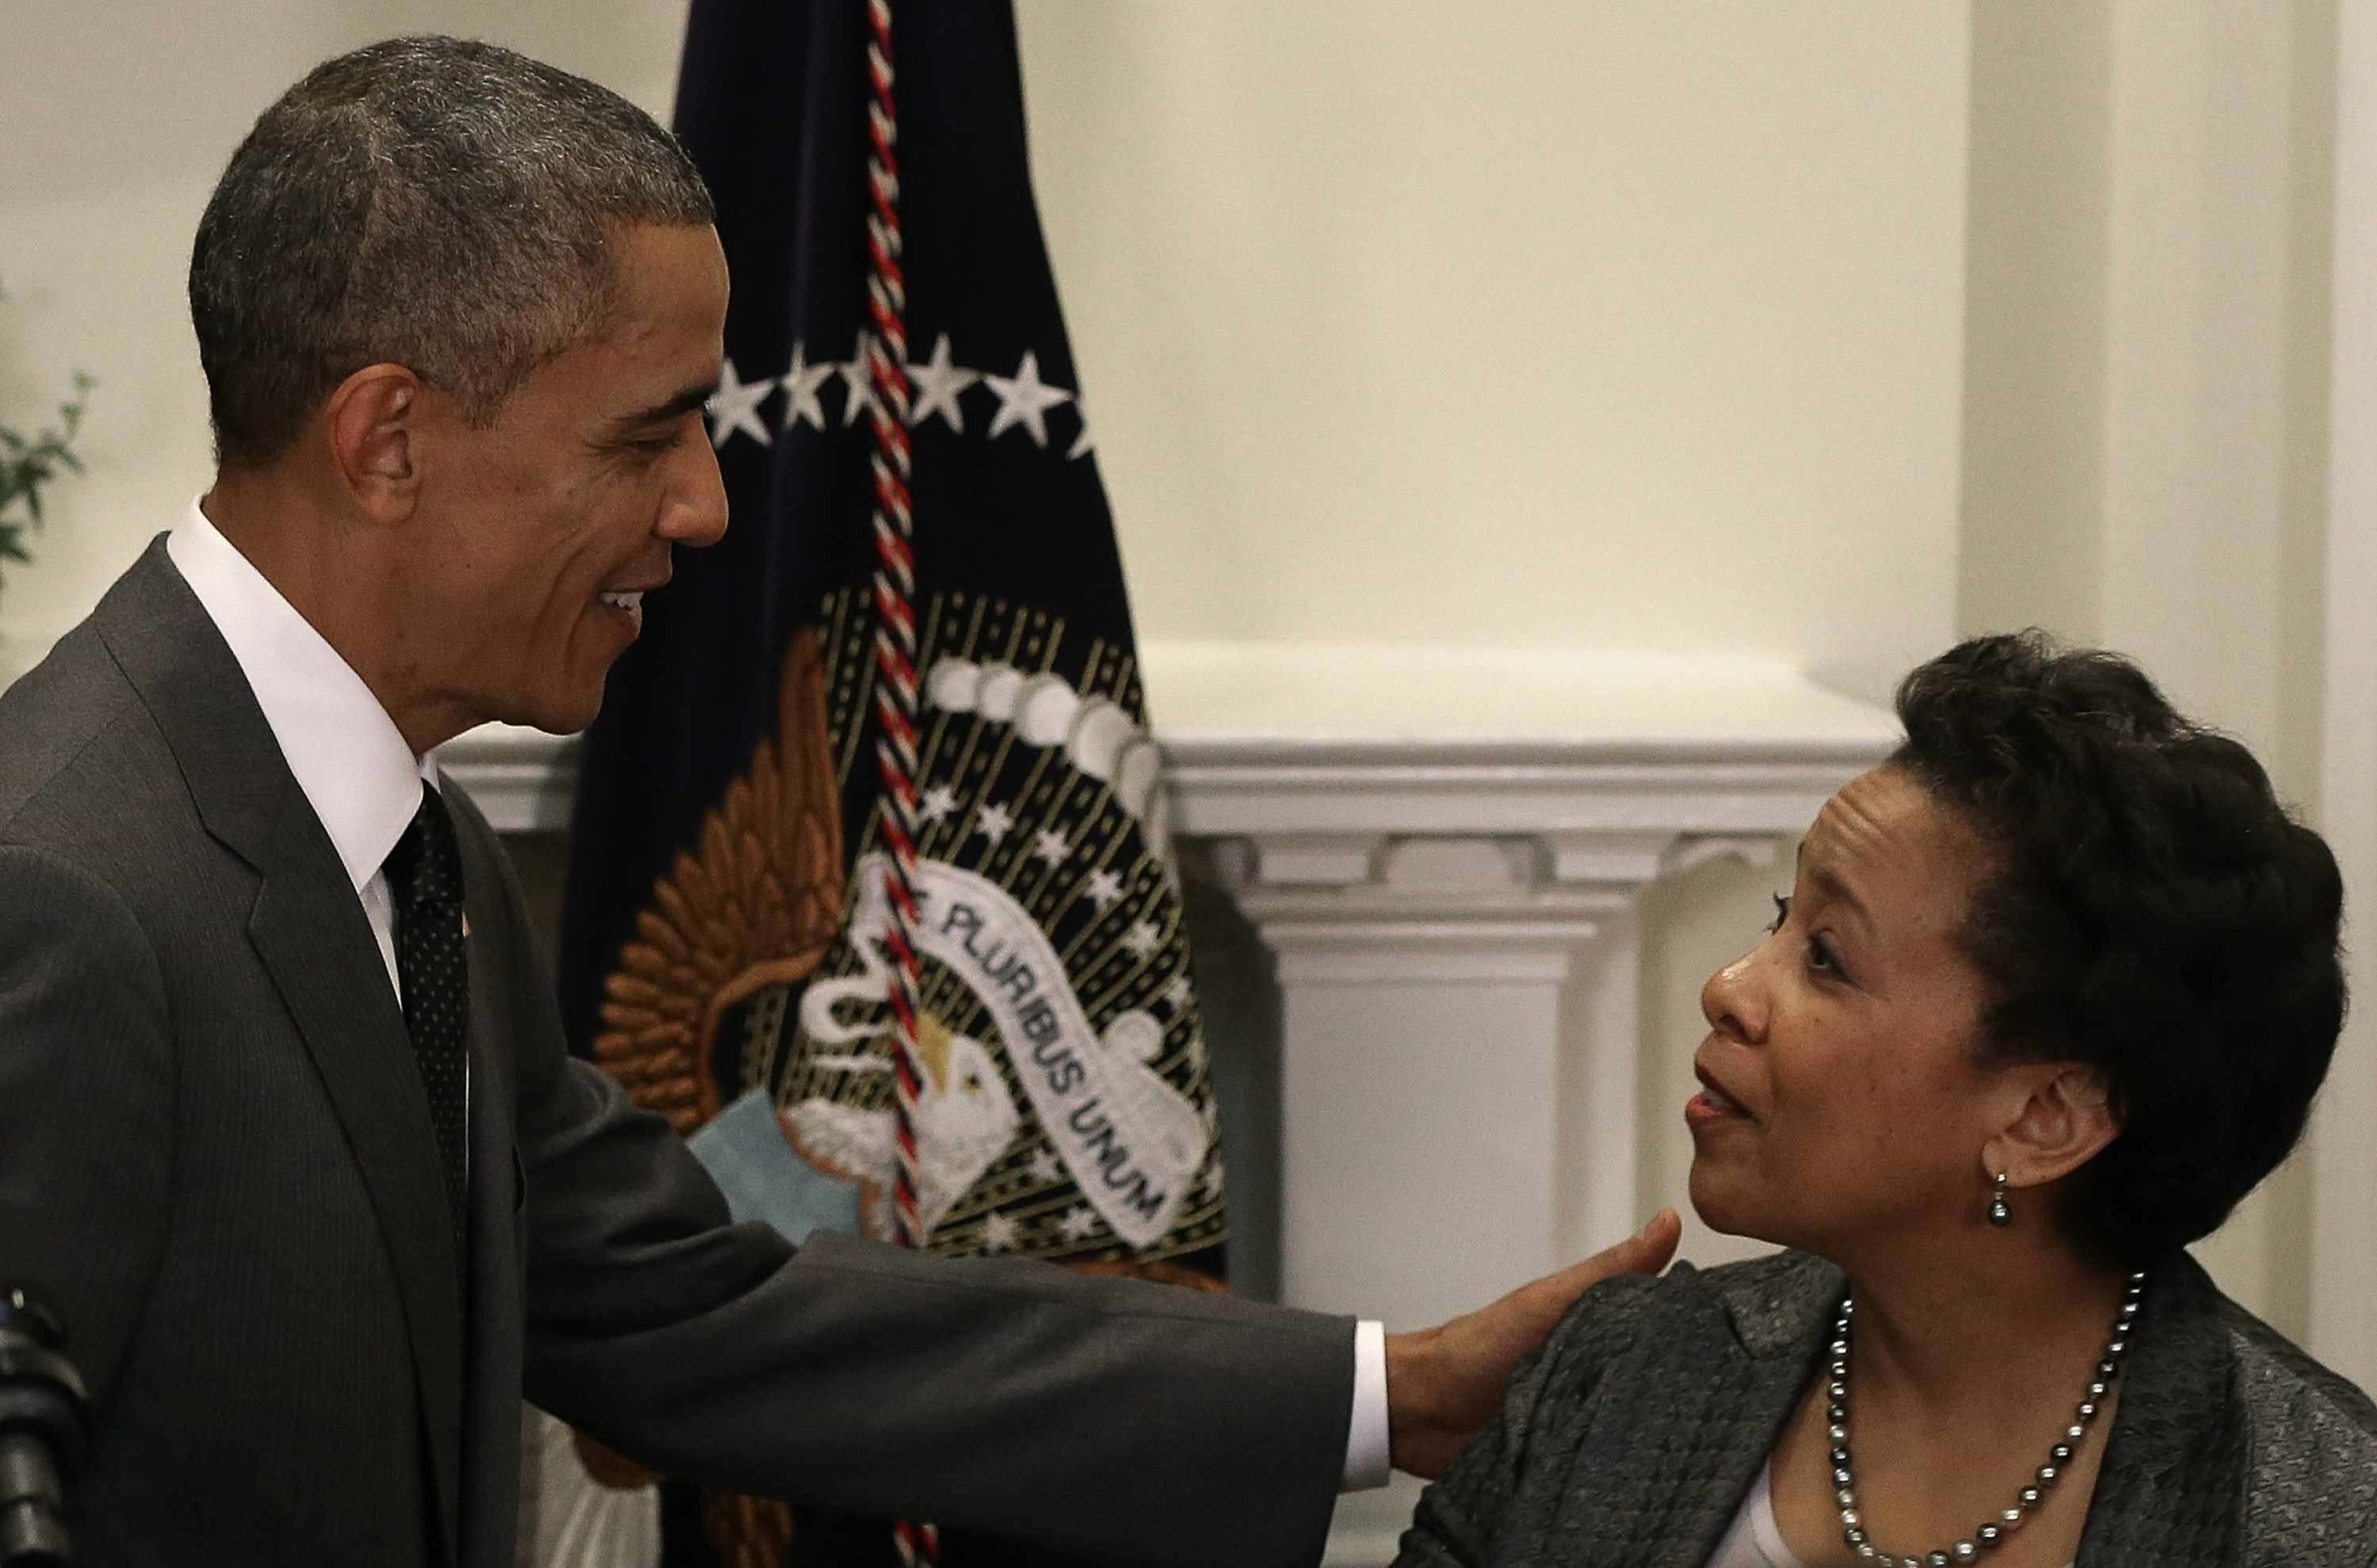 President Barack Obama and U.S. Attorney Loretta Lynch, who he has nominated to be Attorney General. (Photo by Win McNamee/Getty Images)